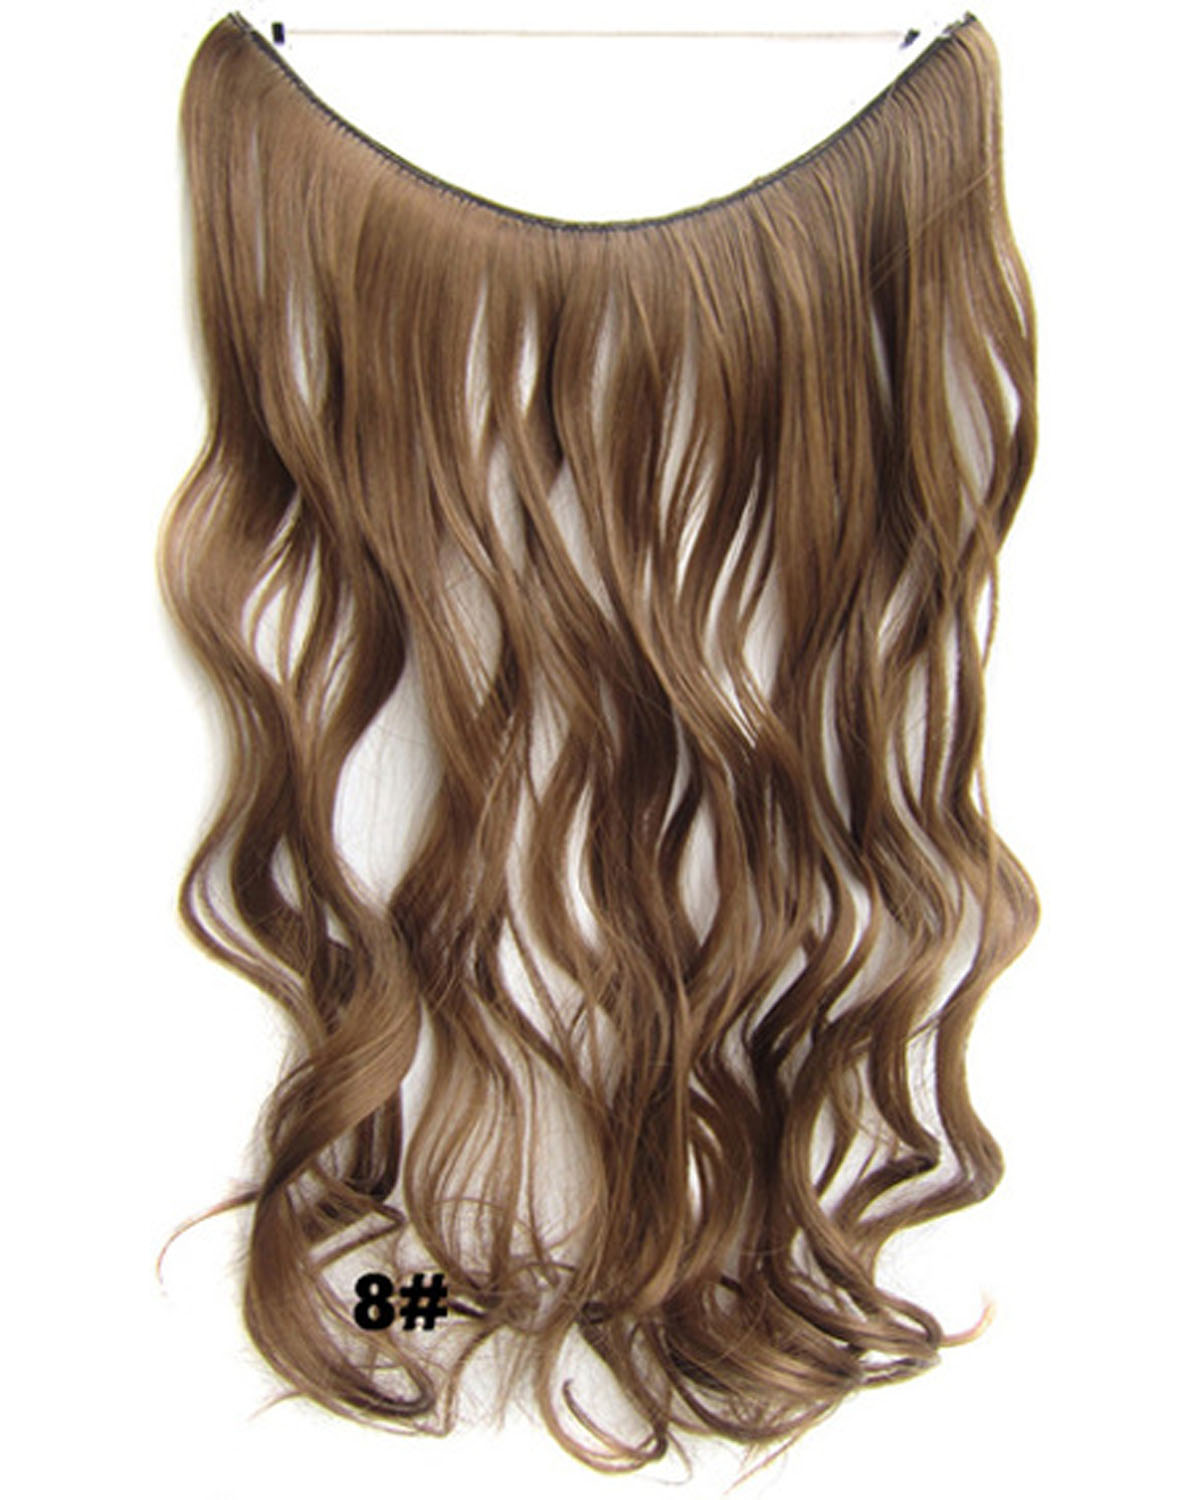 22 Inch Brifgt Curly and Long Miracle One Piece Miracle Wire Flip in Synthetic Hair Extension 8#